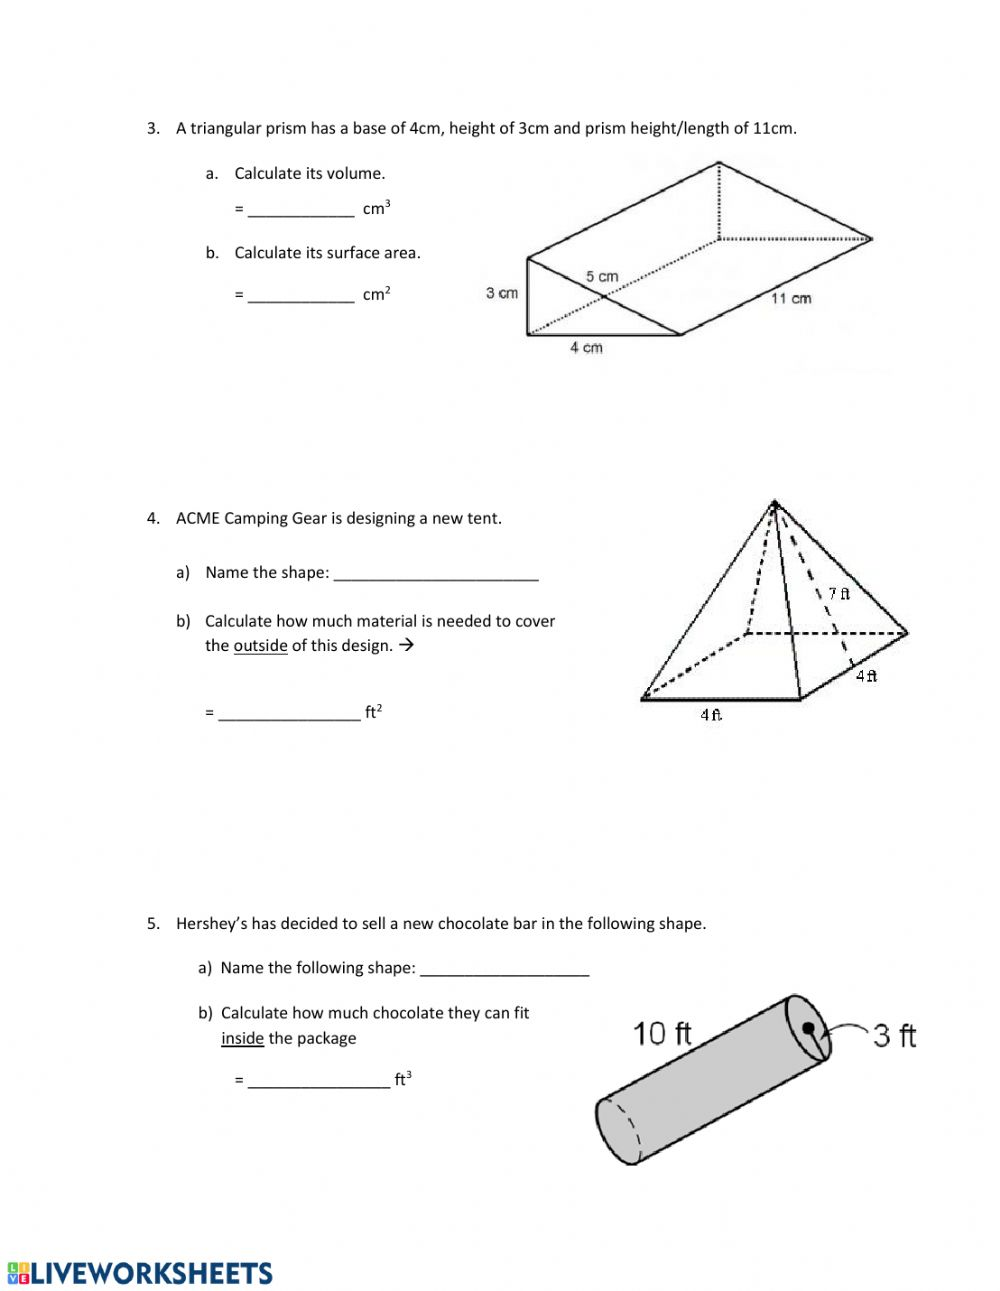 Review of Prisms & Pyramids worksheet